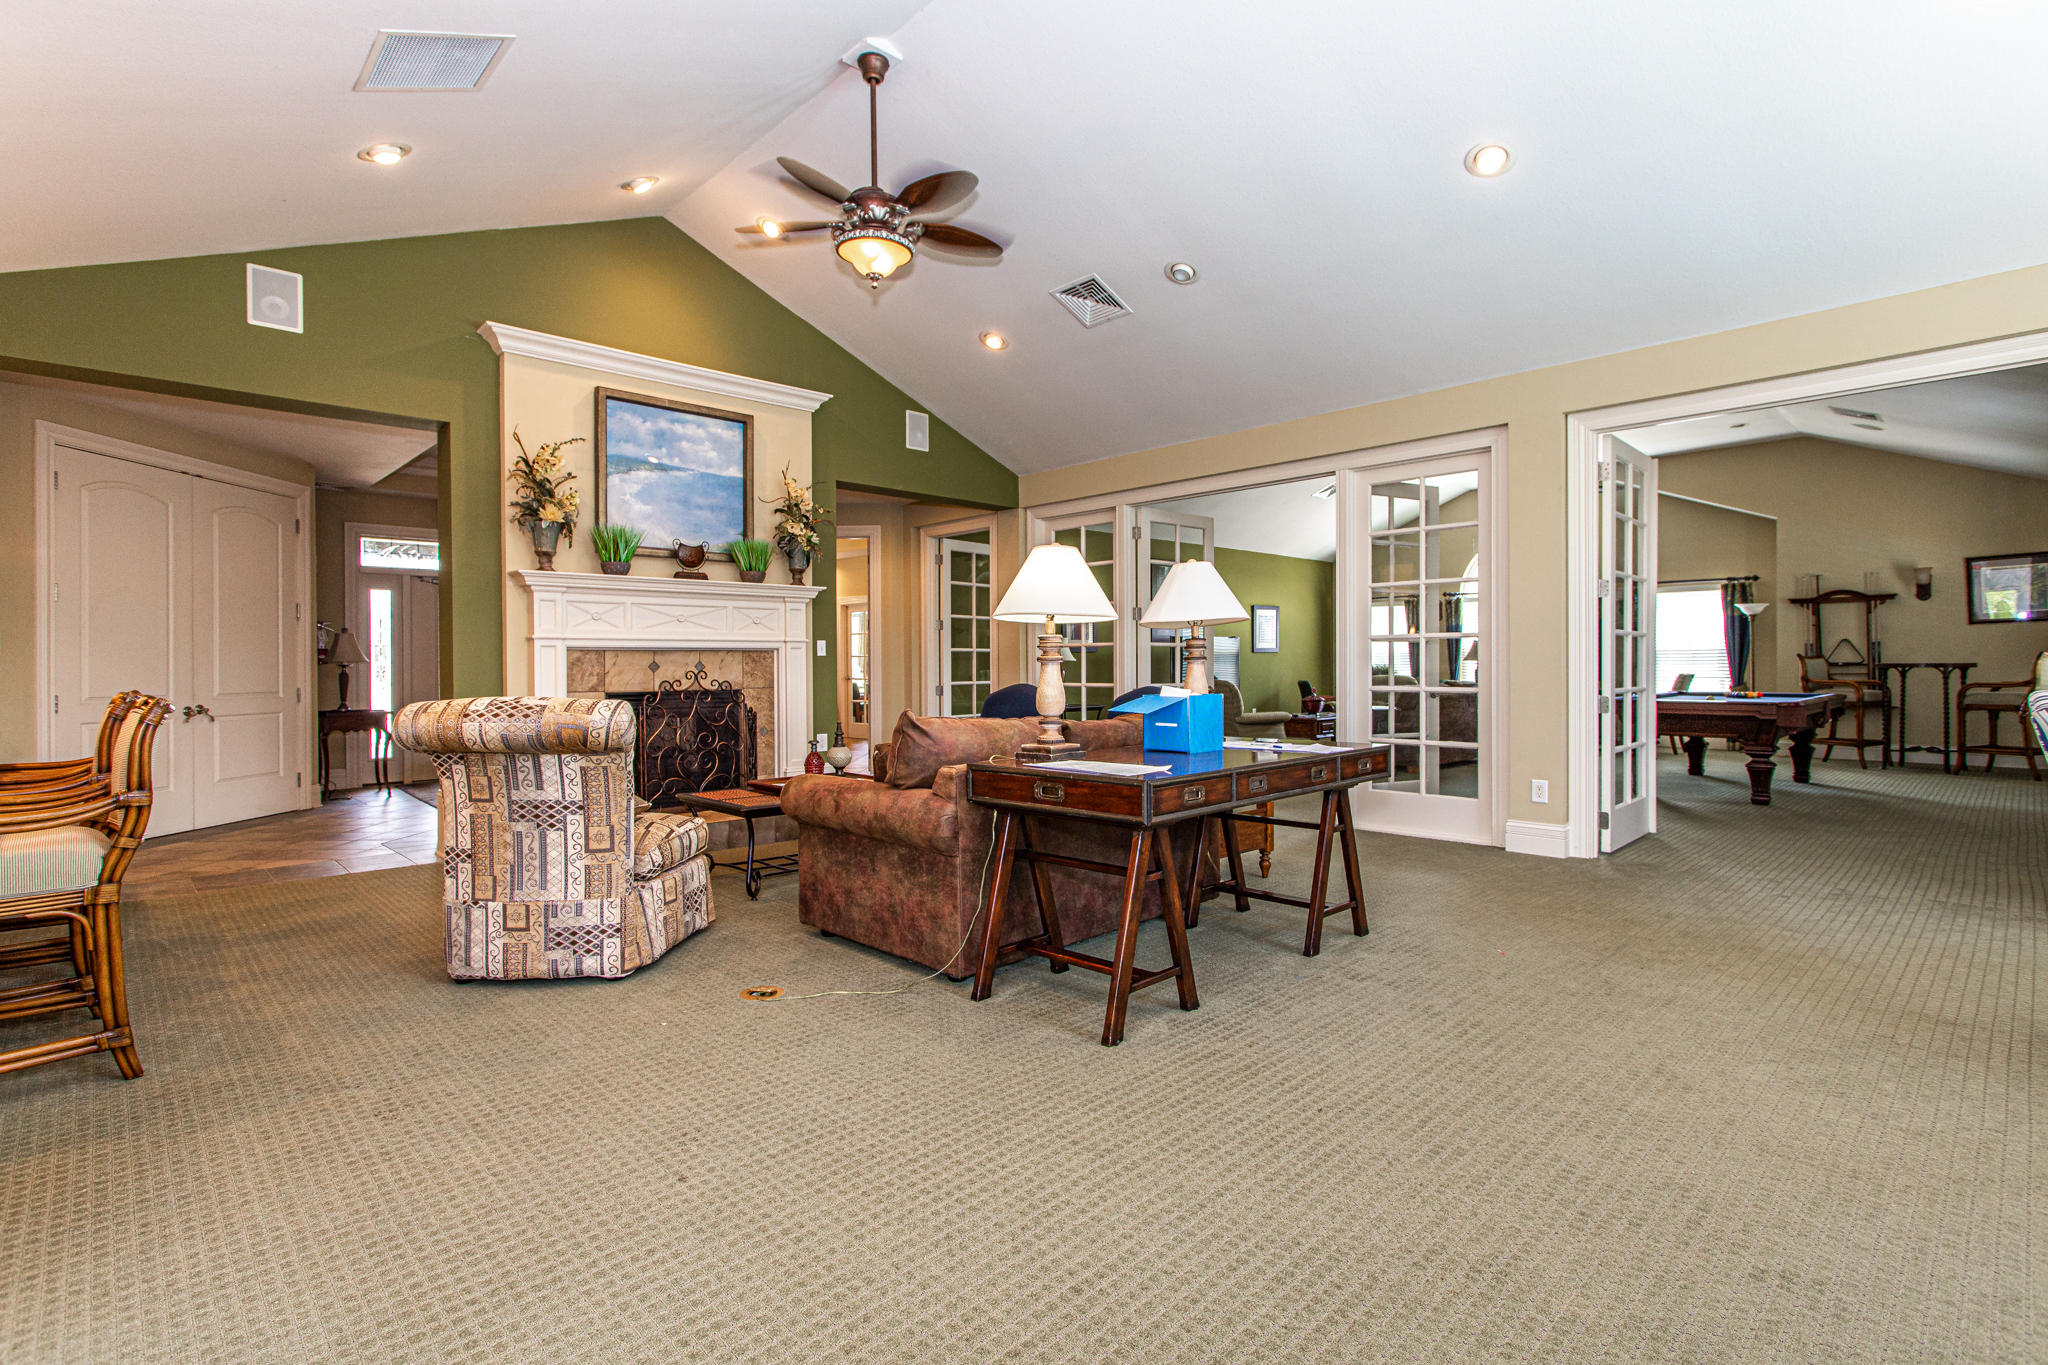 4778 Willow Bluff Circle: